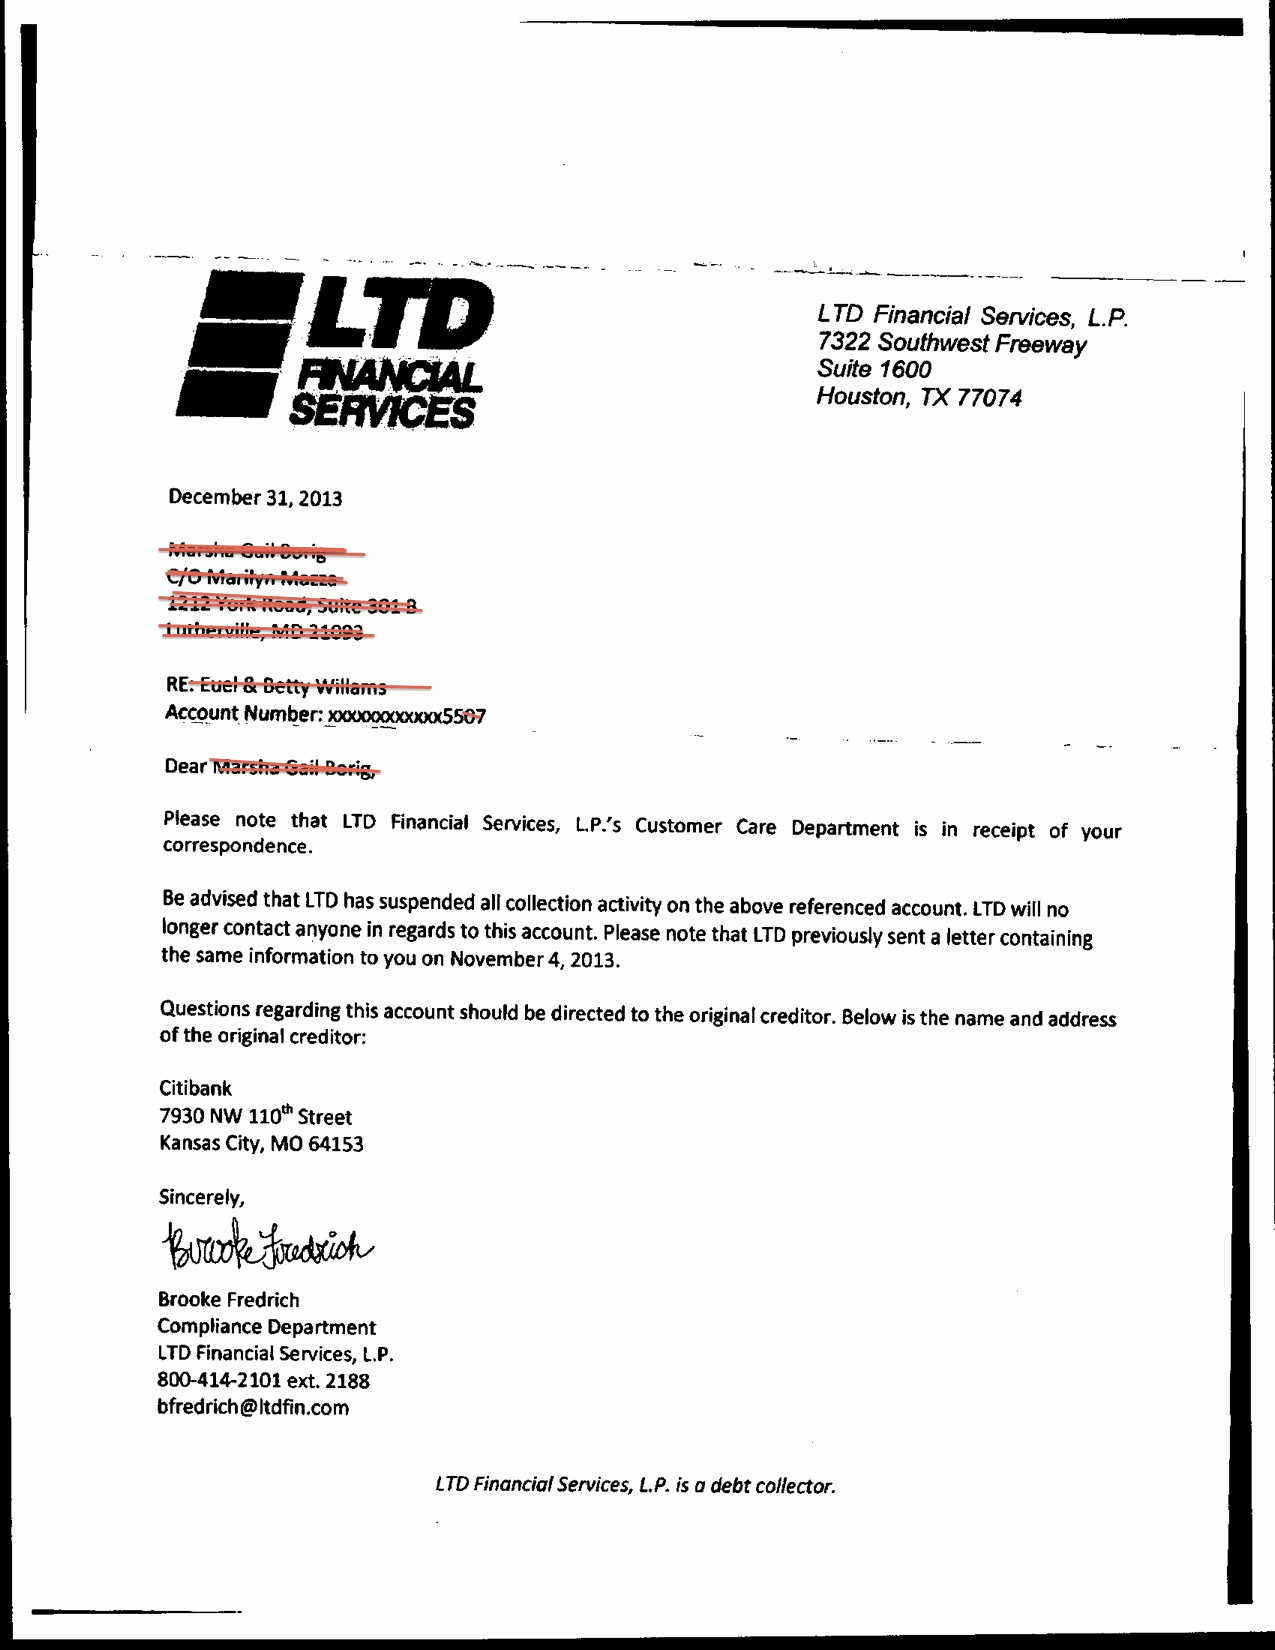 Debt Validation Letter Template Elegant Example Letters for Debt Settlement Validation & Credit